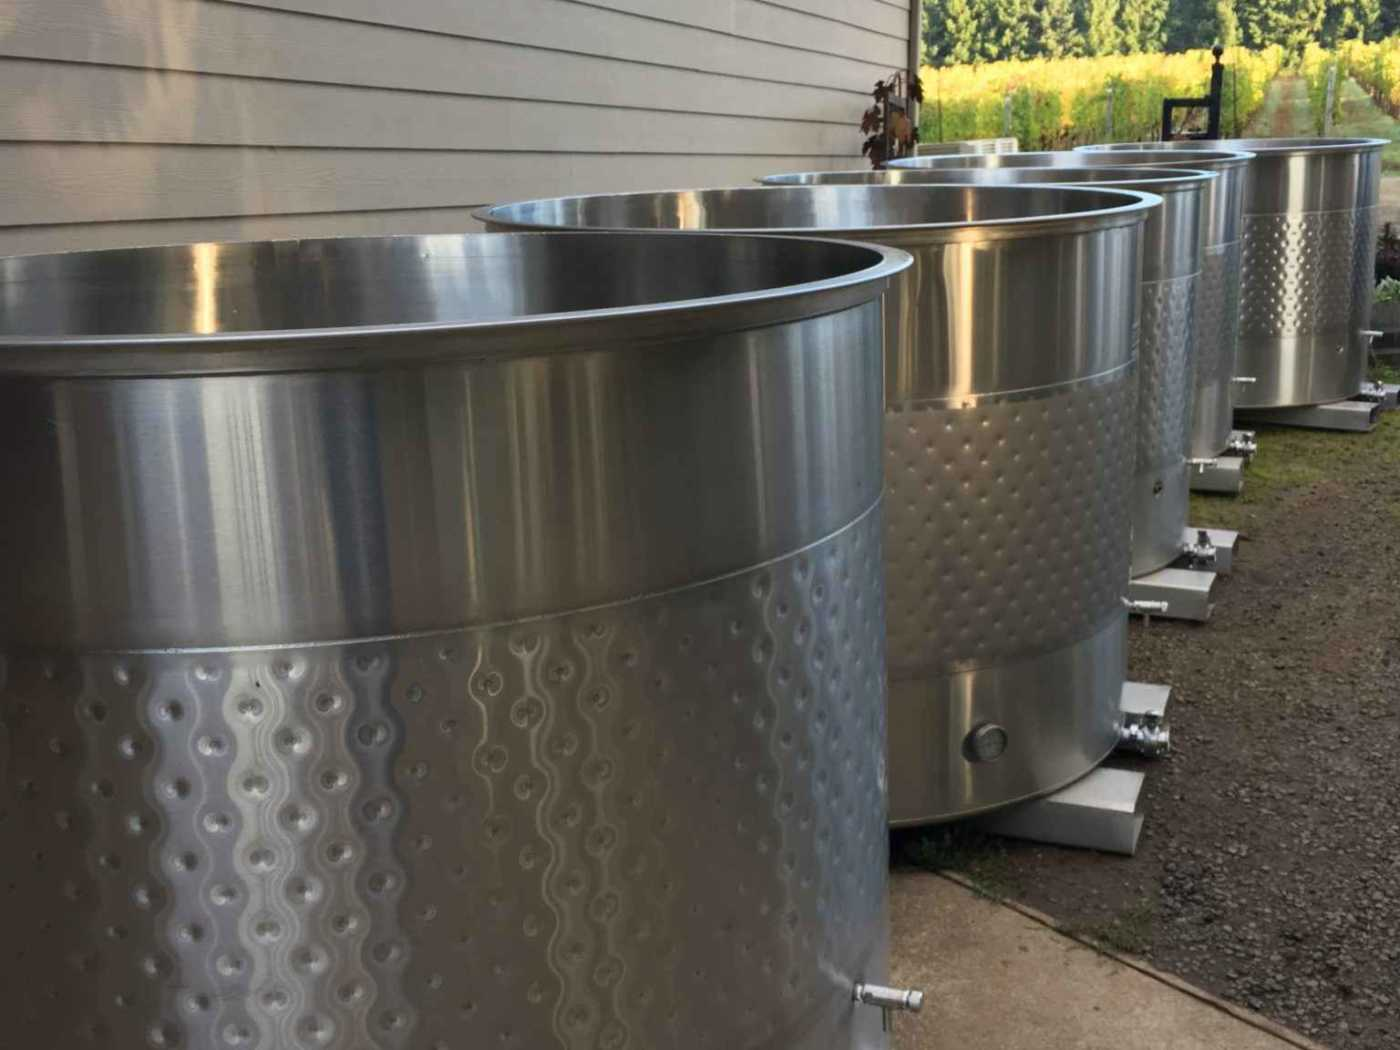 Steel fermentation tanks ready to go for Harvest